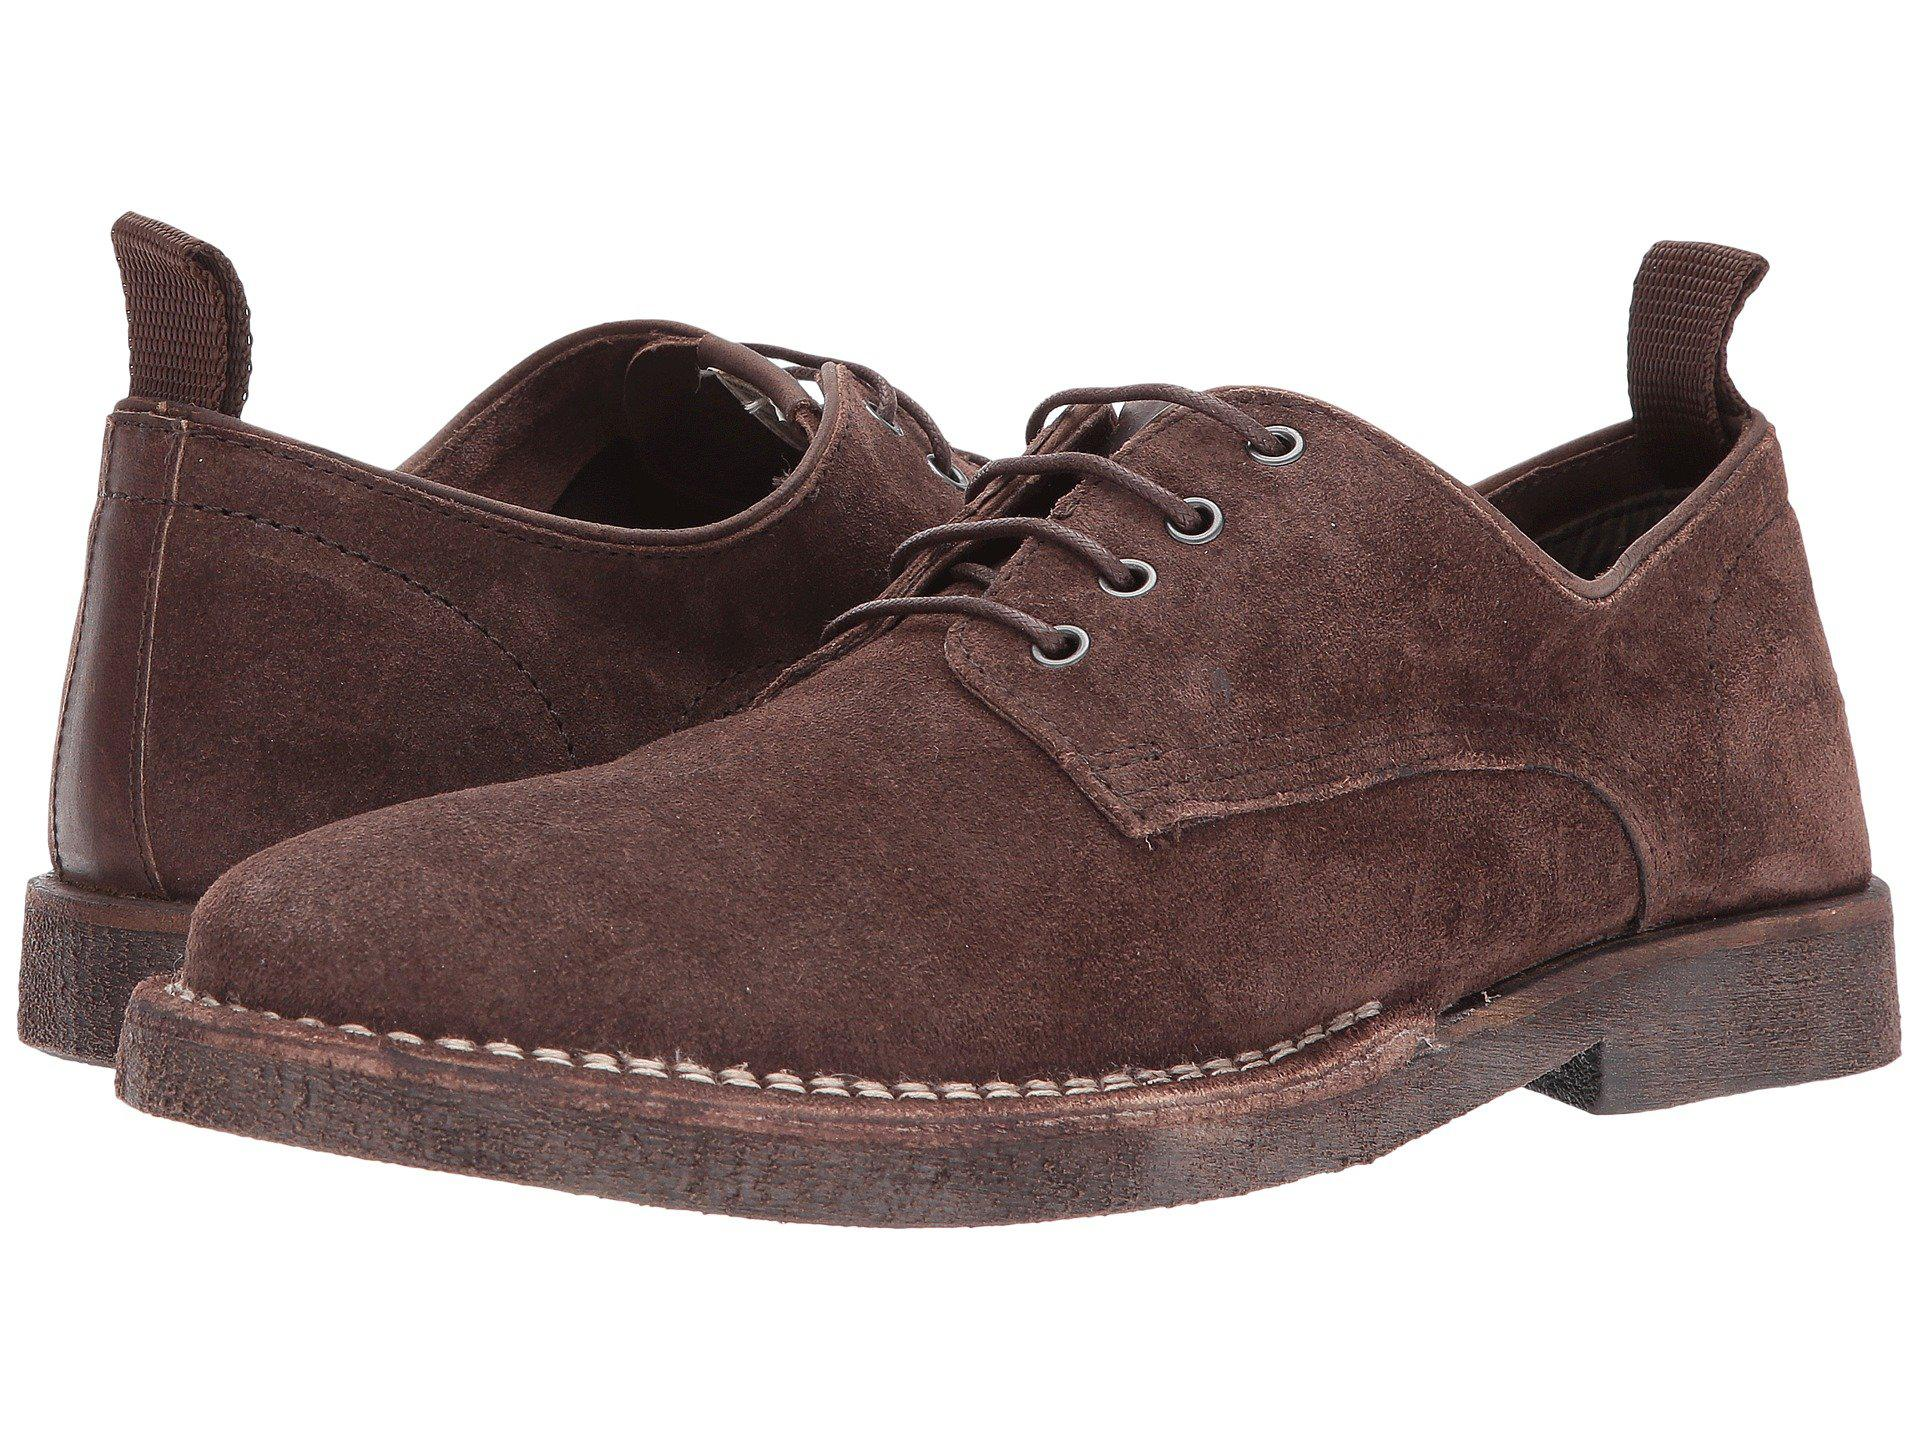 6516b2dfae2 Lyst - Steve Madden Lowman Oxford in Brown for Men - Save 43%